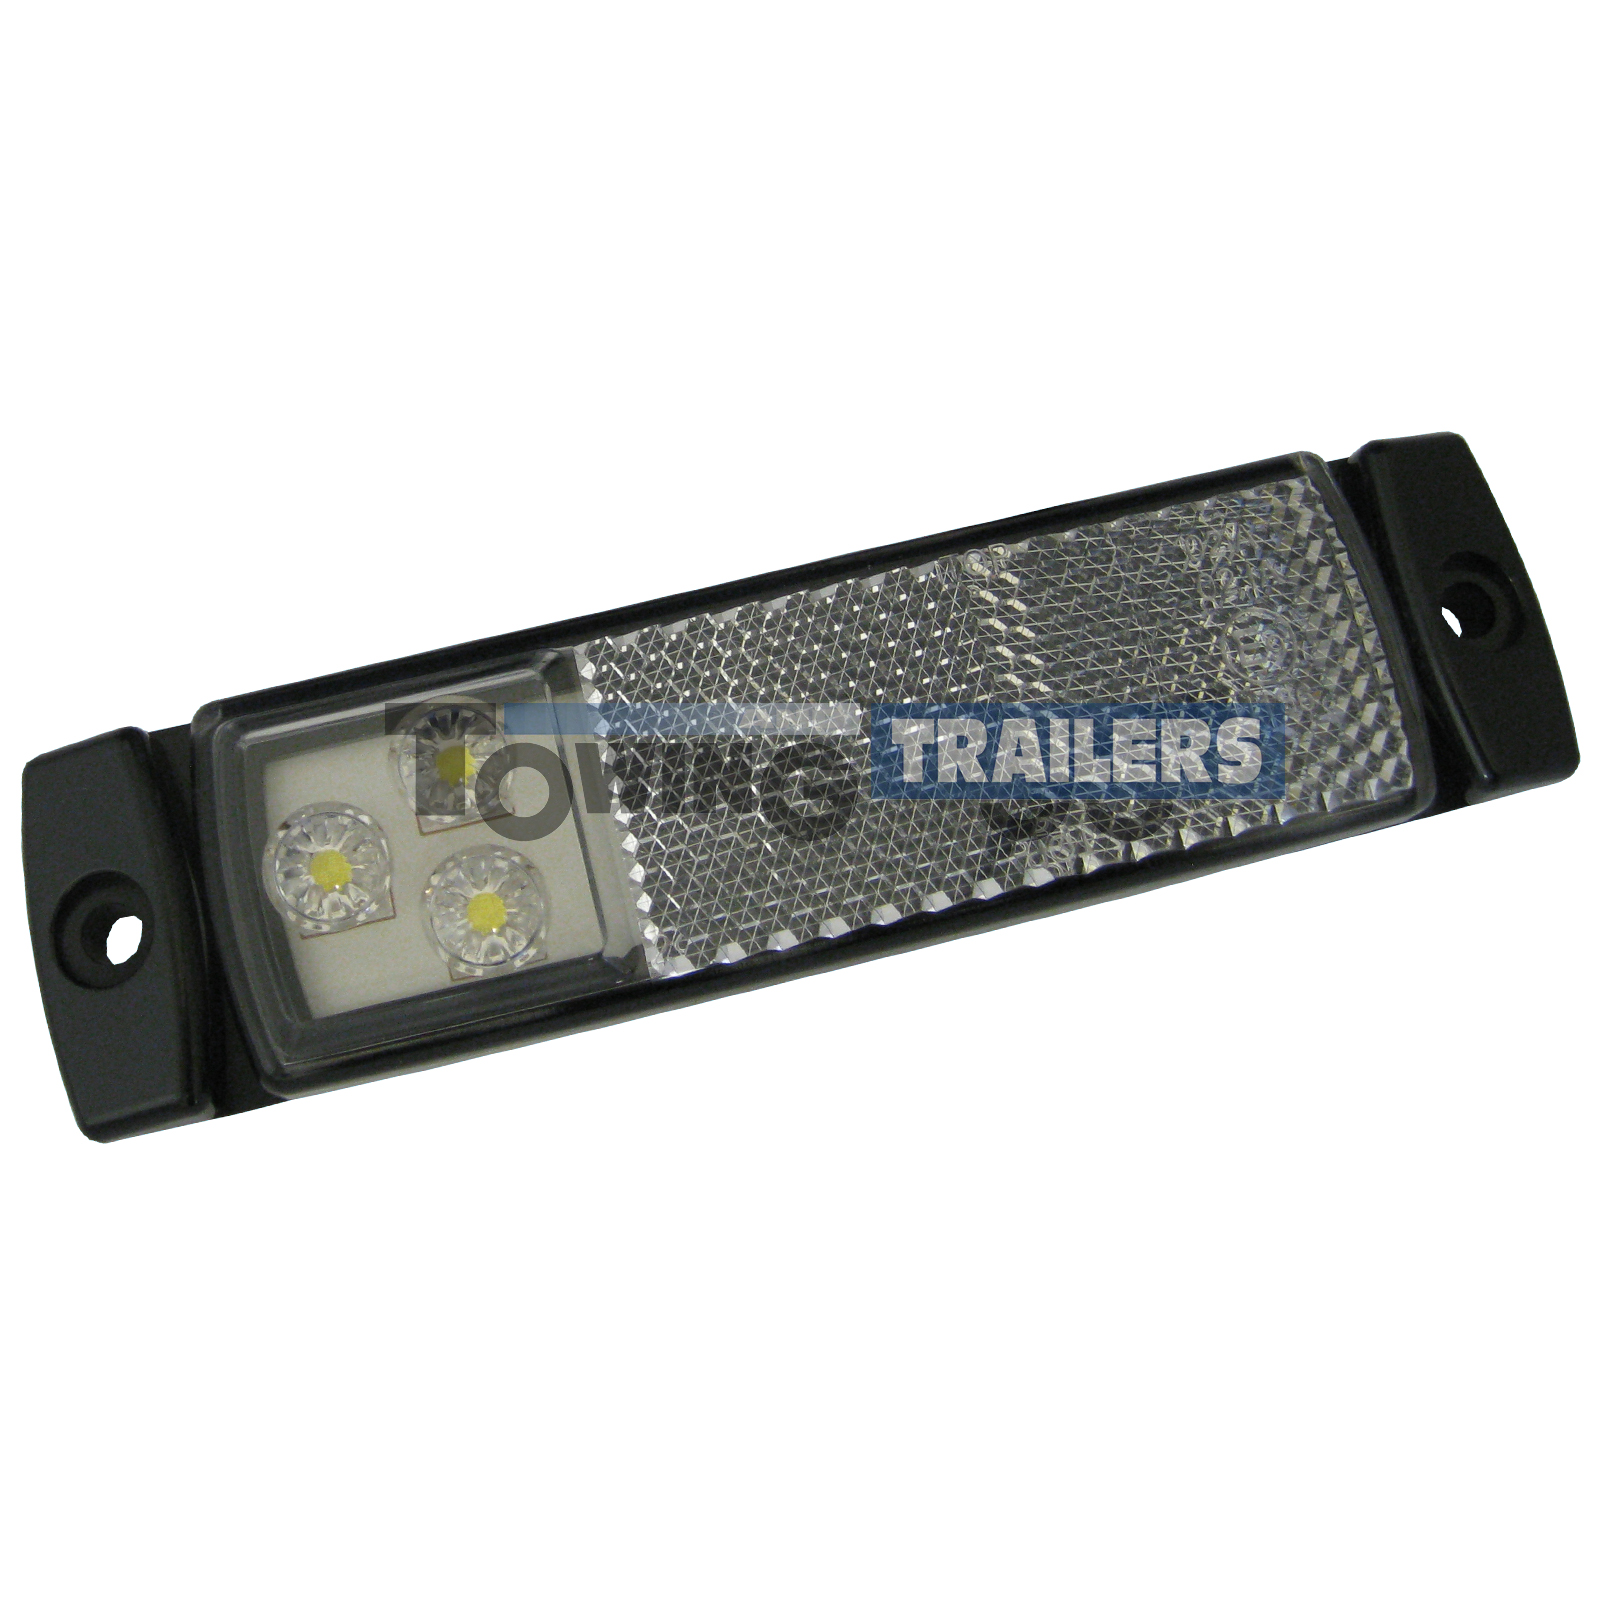 LED Autolamps 129 Series Front Trailer Marker Light with Reflector